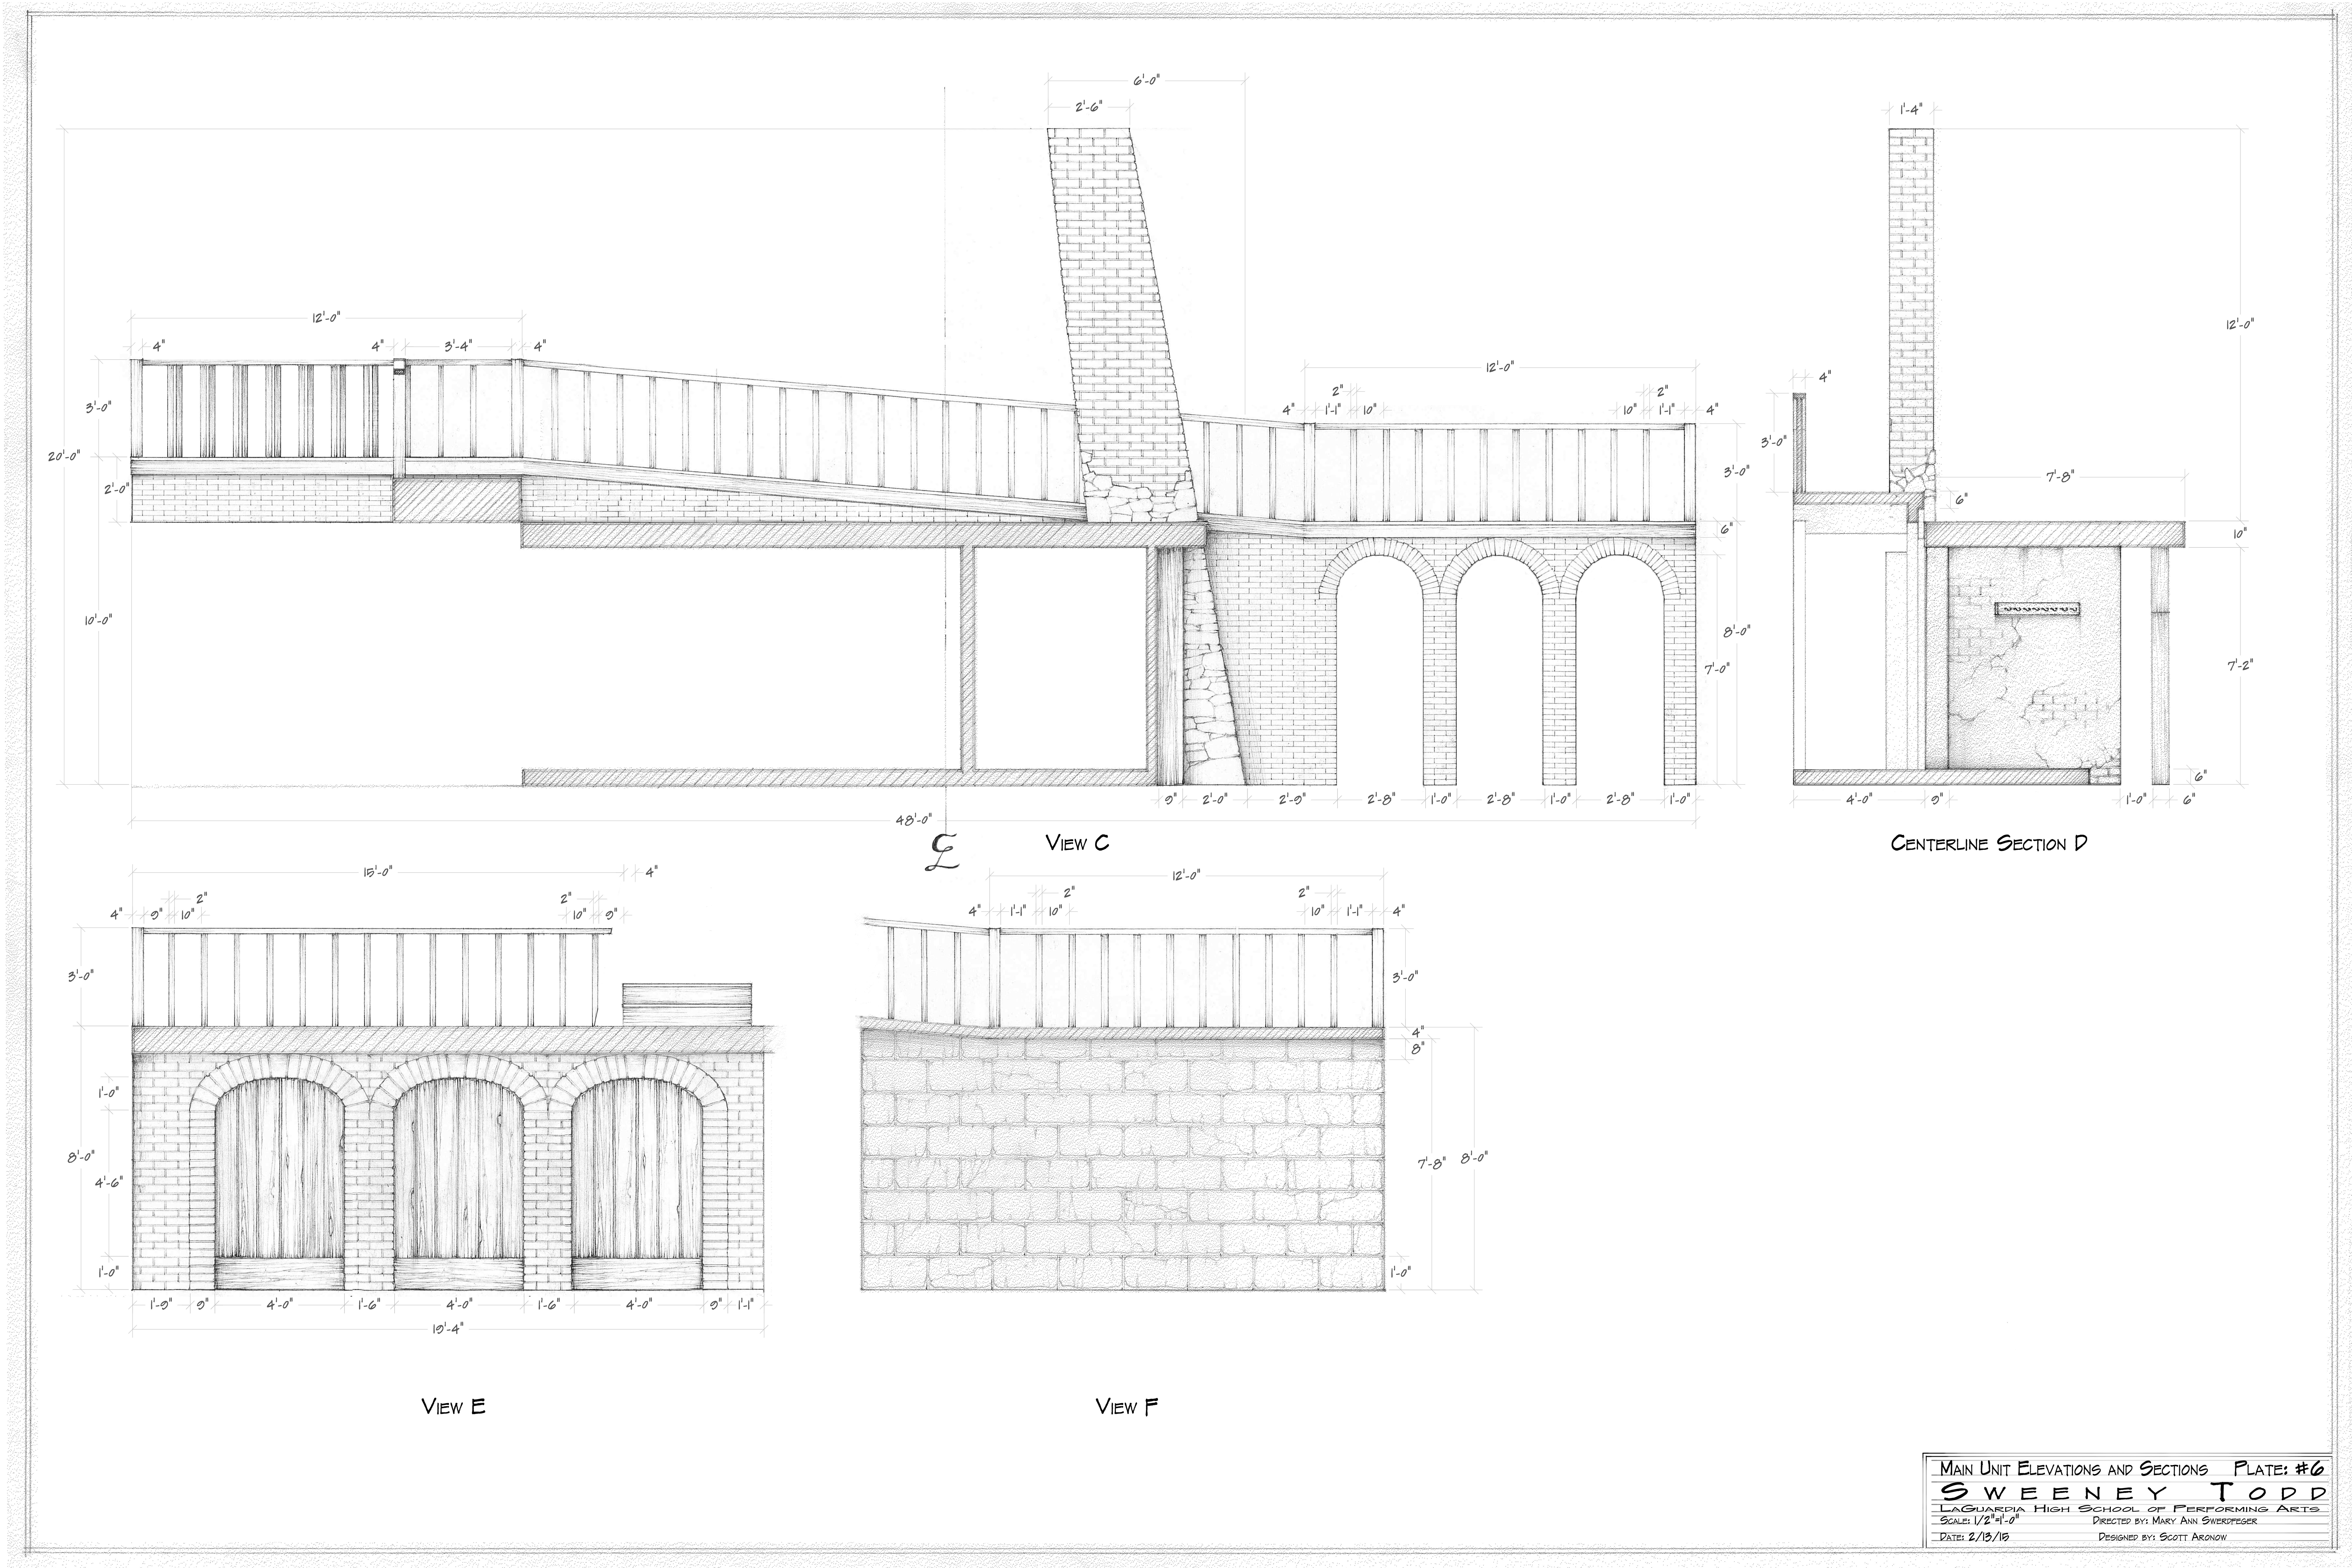 Plate #6. Main Unit Elevations and Sections